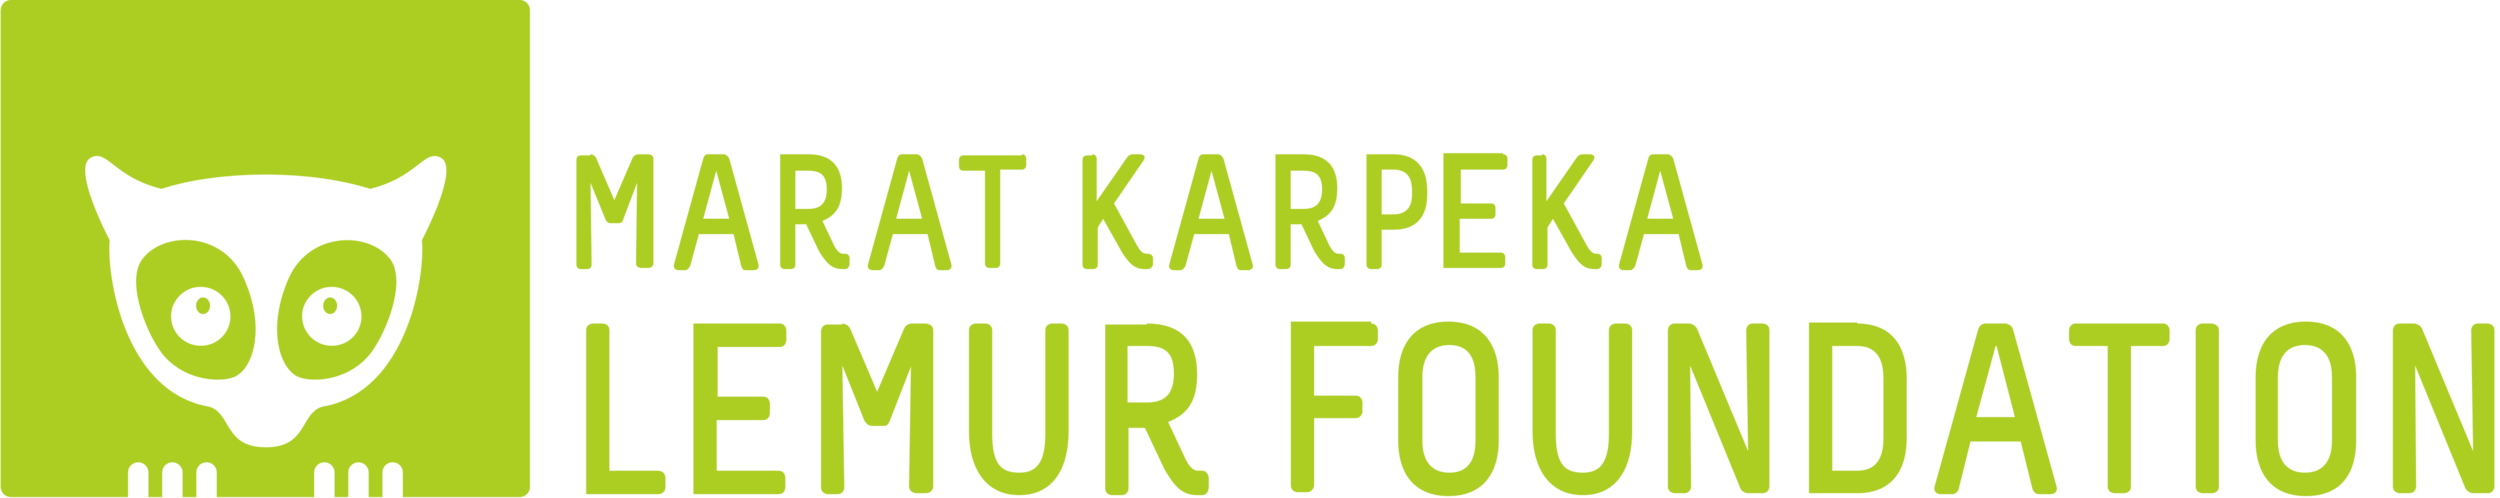 Marat Karpeka Lemur Foundation